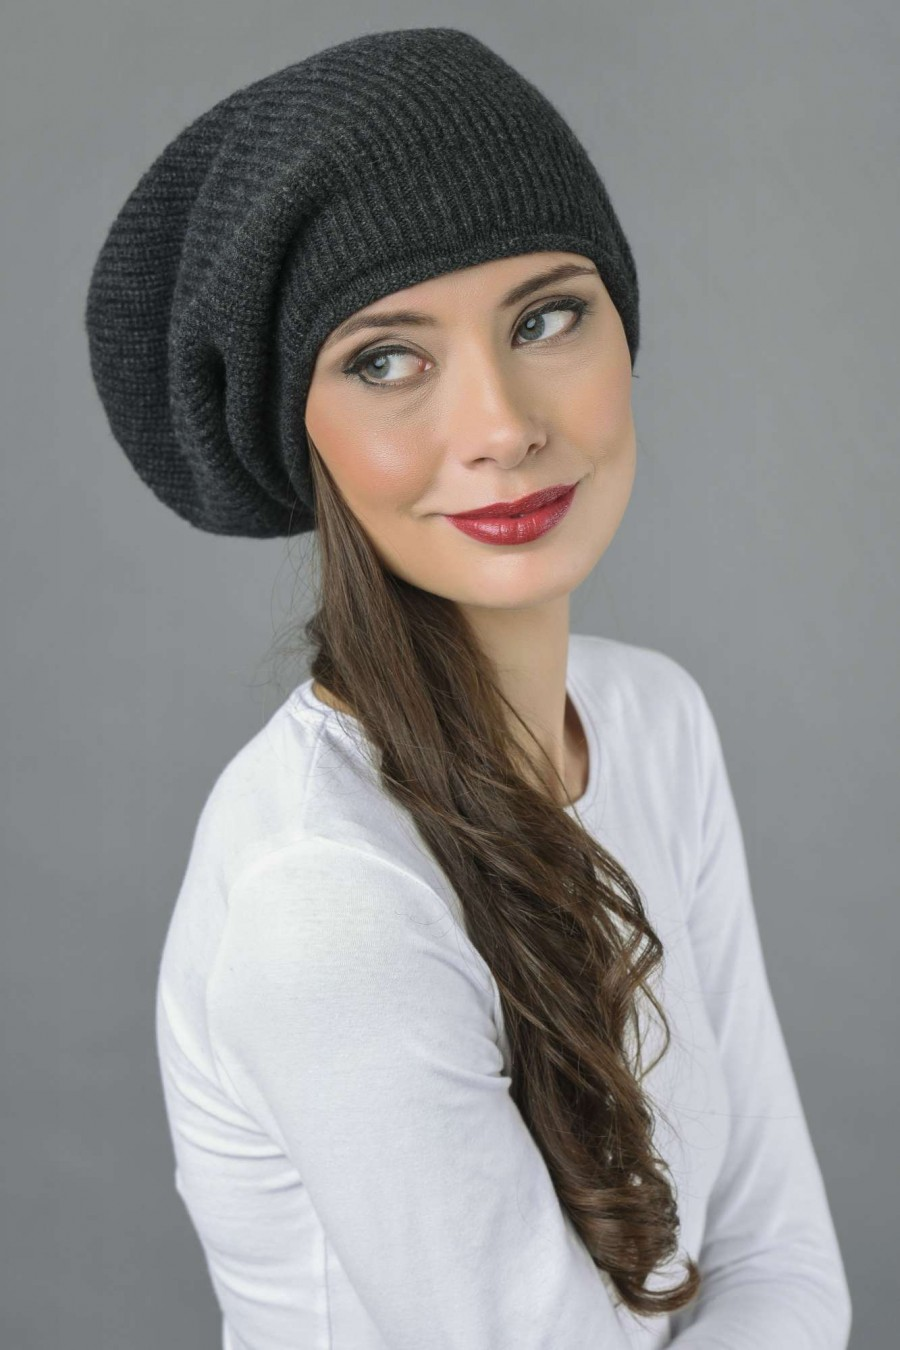 ce4879663c047c Pure Cashmere Ribbed Knitted Slouchy Beanie Hat in Charcoal Grey ...